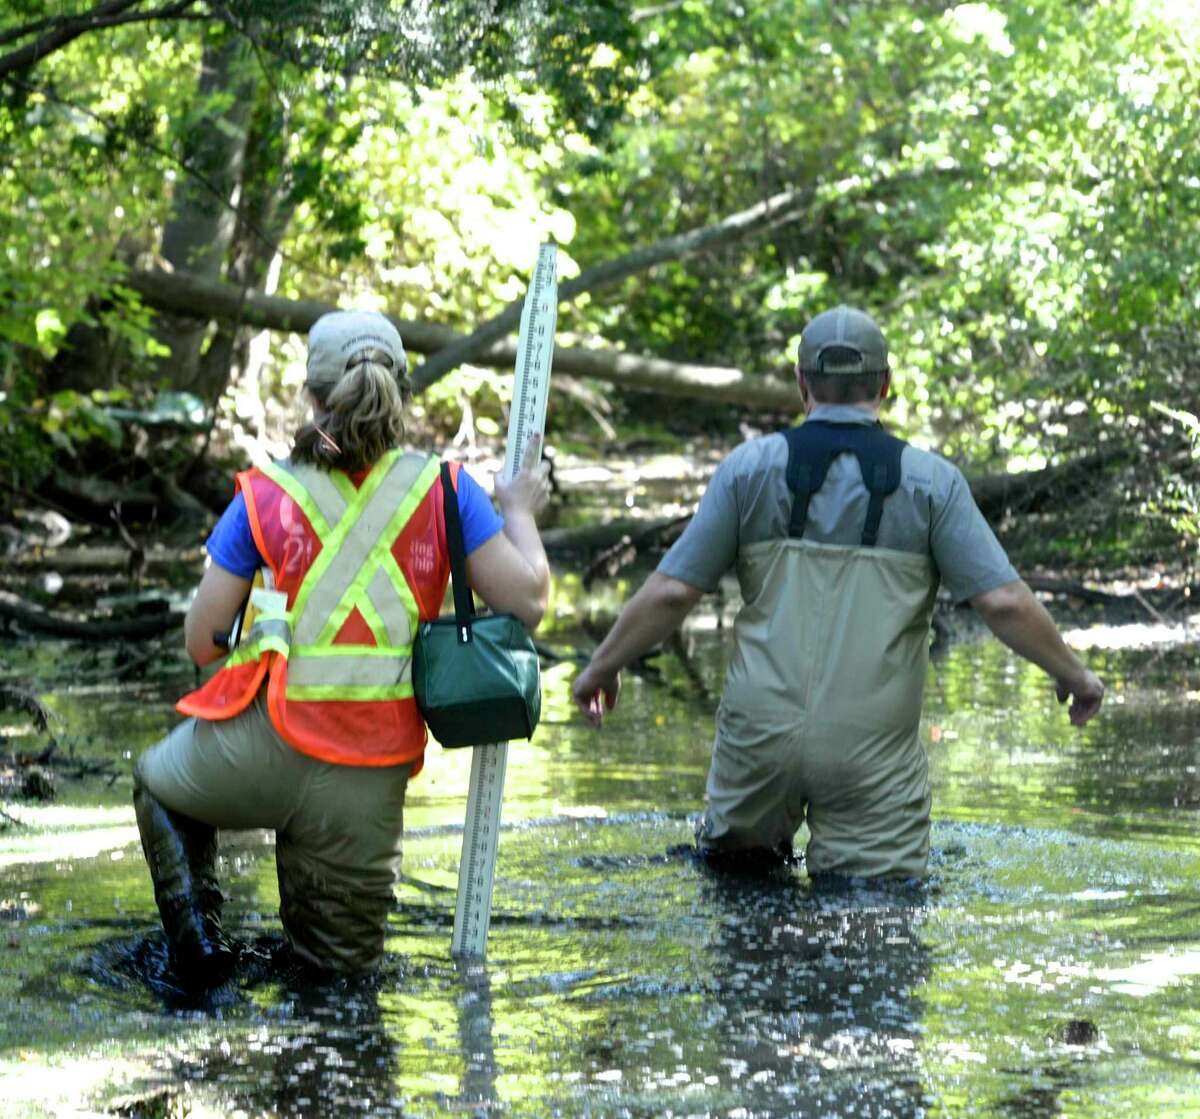 Mike Jastremski, Watershed Conservation Director, right, and Savannah Judge, Conservation Project Director, for the Housatonic Valley Association wade their way up Sympaug Brook, in Bethel, Conn, on Monday afternoon, September 12, 2016.